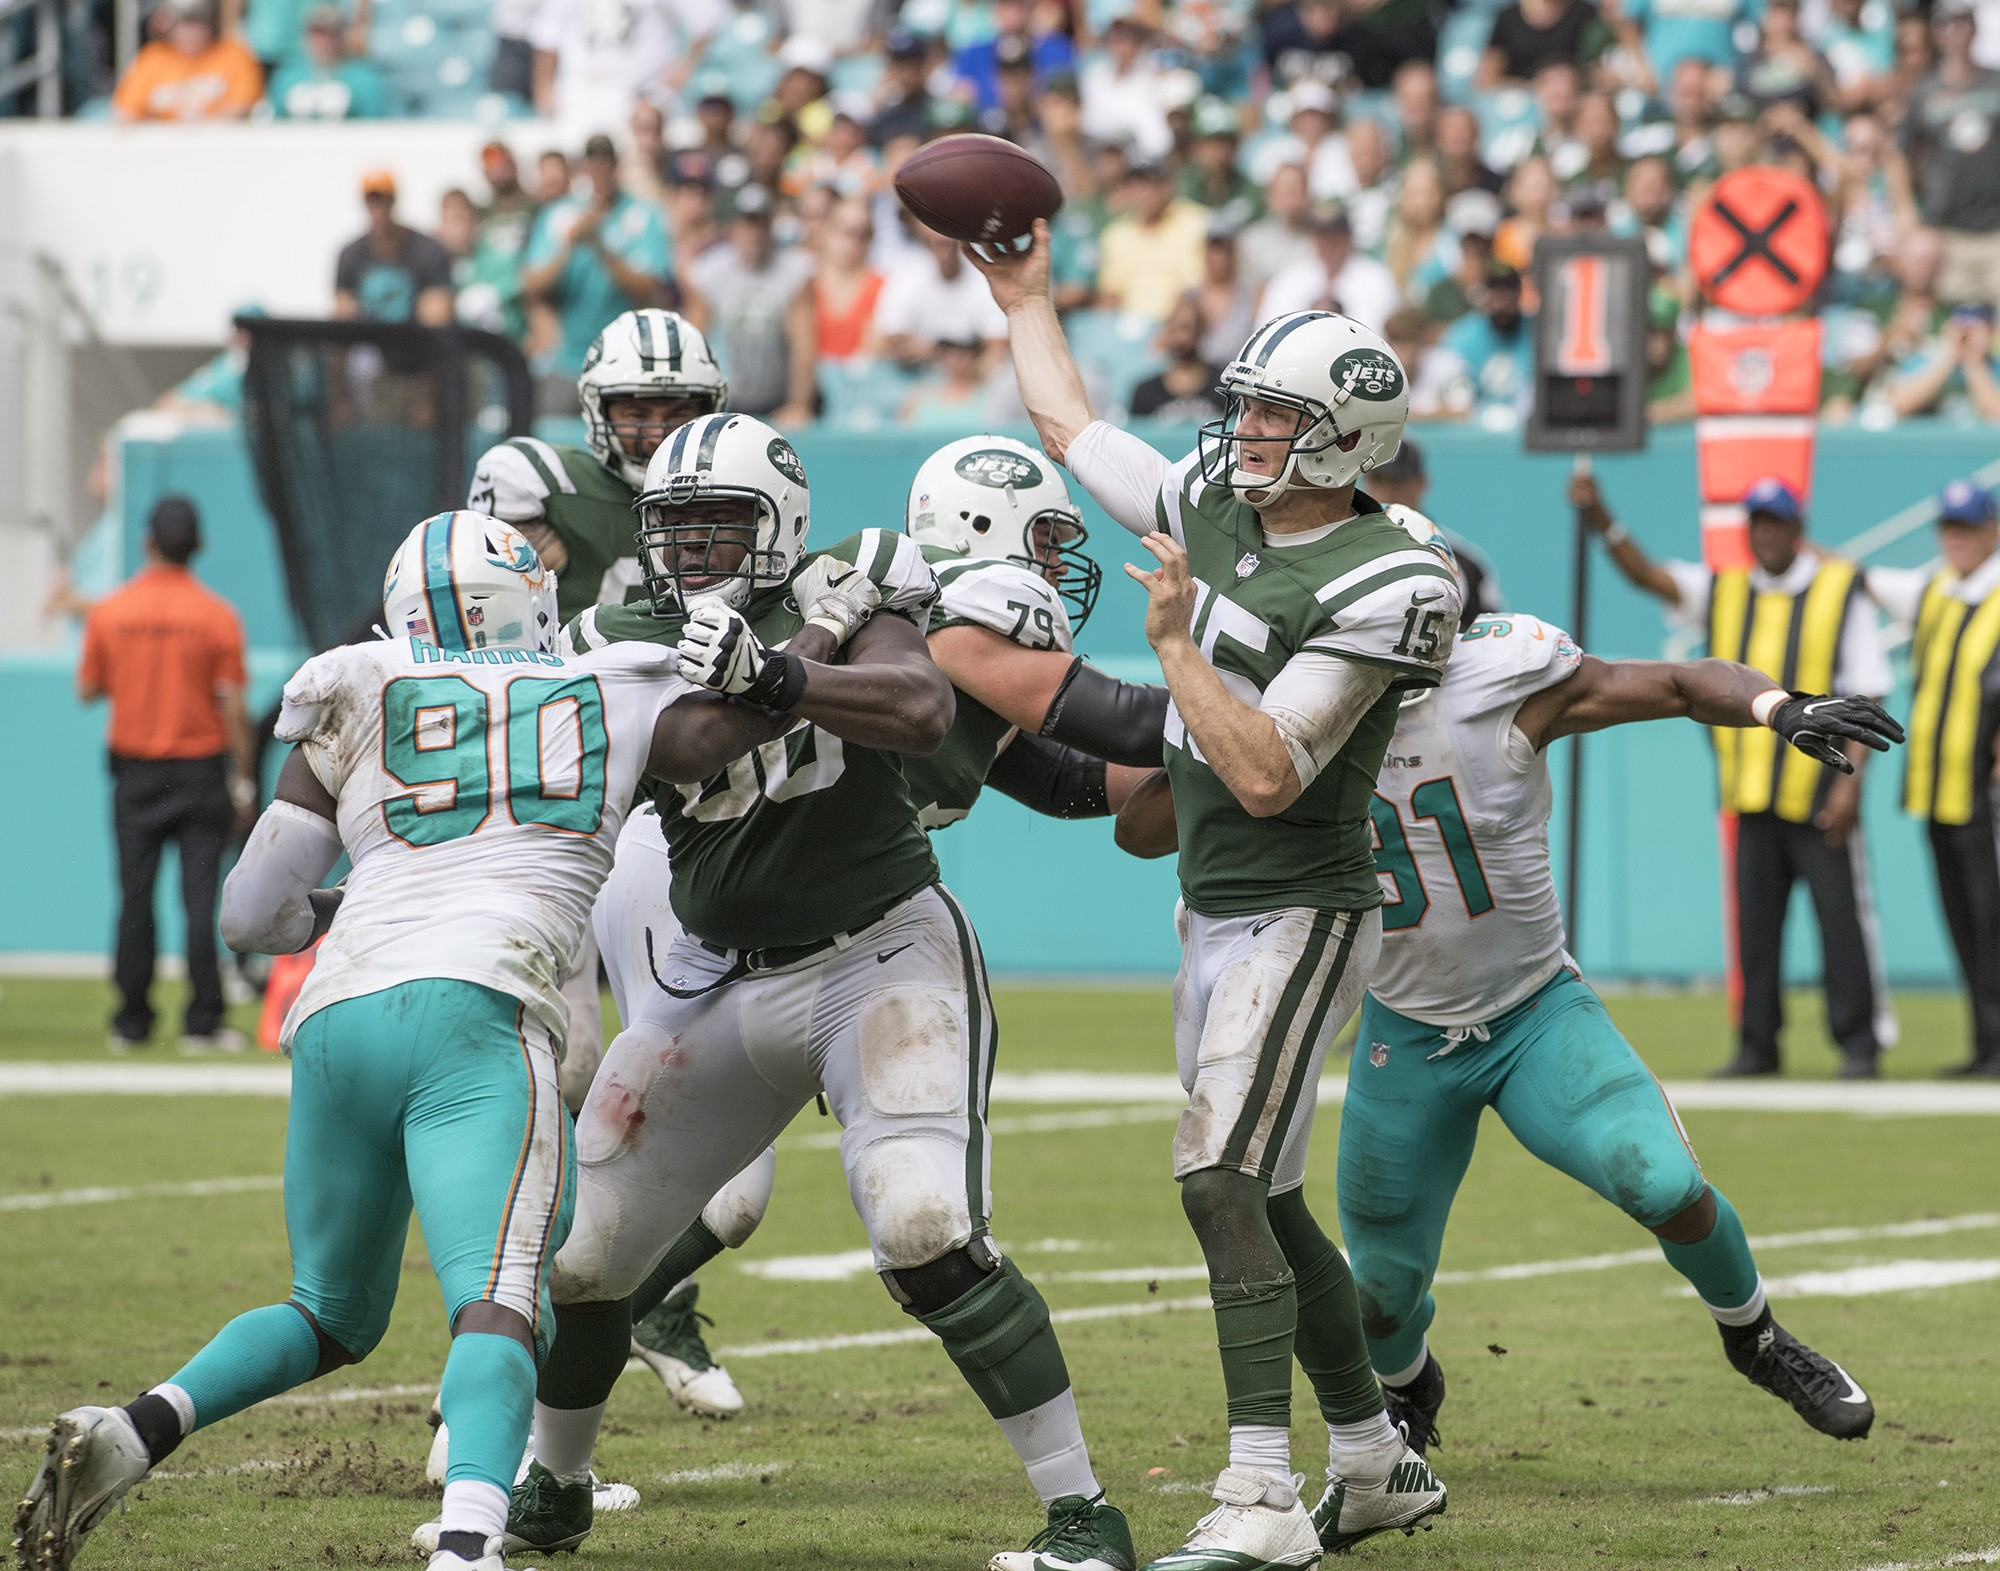 New York Jets quarterback Josh McCown (15) releases a pass that is intercepted by Miami Dolphins cornerback Bobby McCain (28) during 2nd half play of an NFL football game on Sunday, Oct. 22, 2017, in Miami Gardens, Fla. The Miami Dolphins went on to defeat the New York Jets 31-28. (Donald Edgar/El Latino Digital)